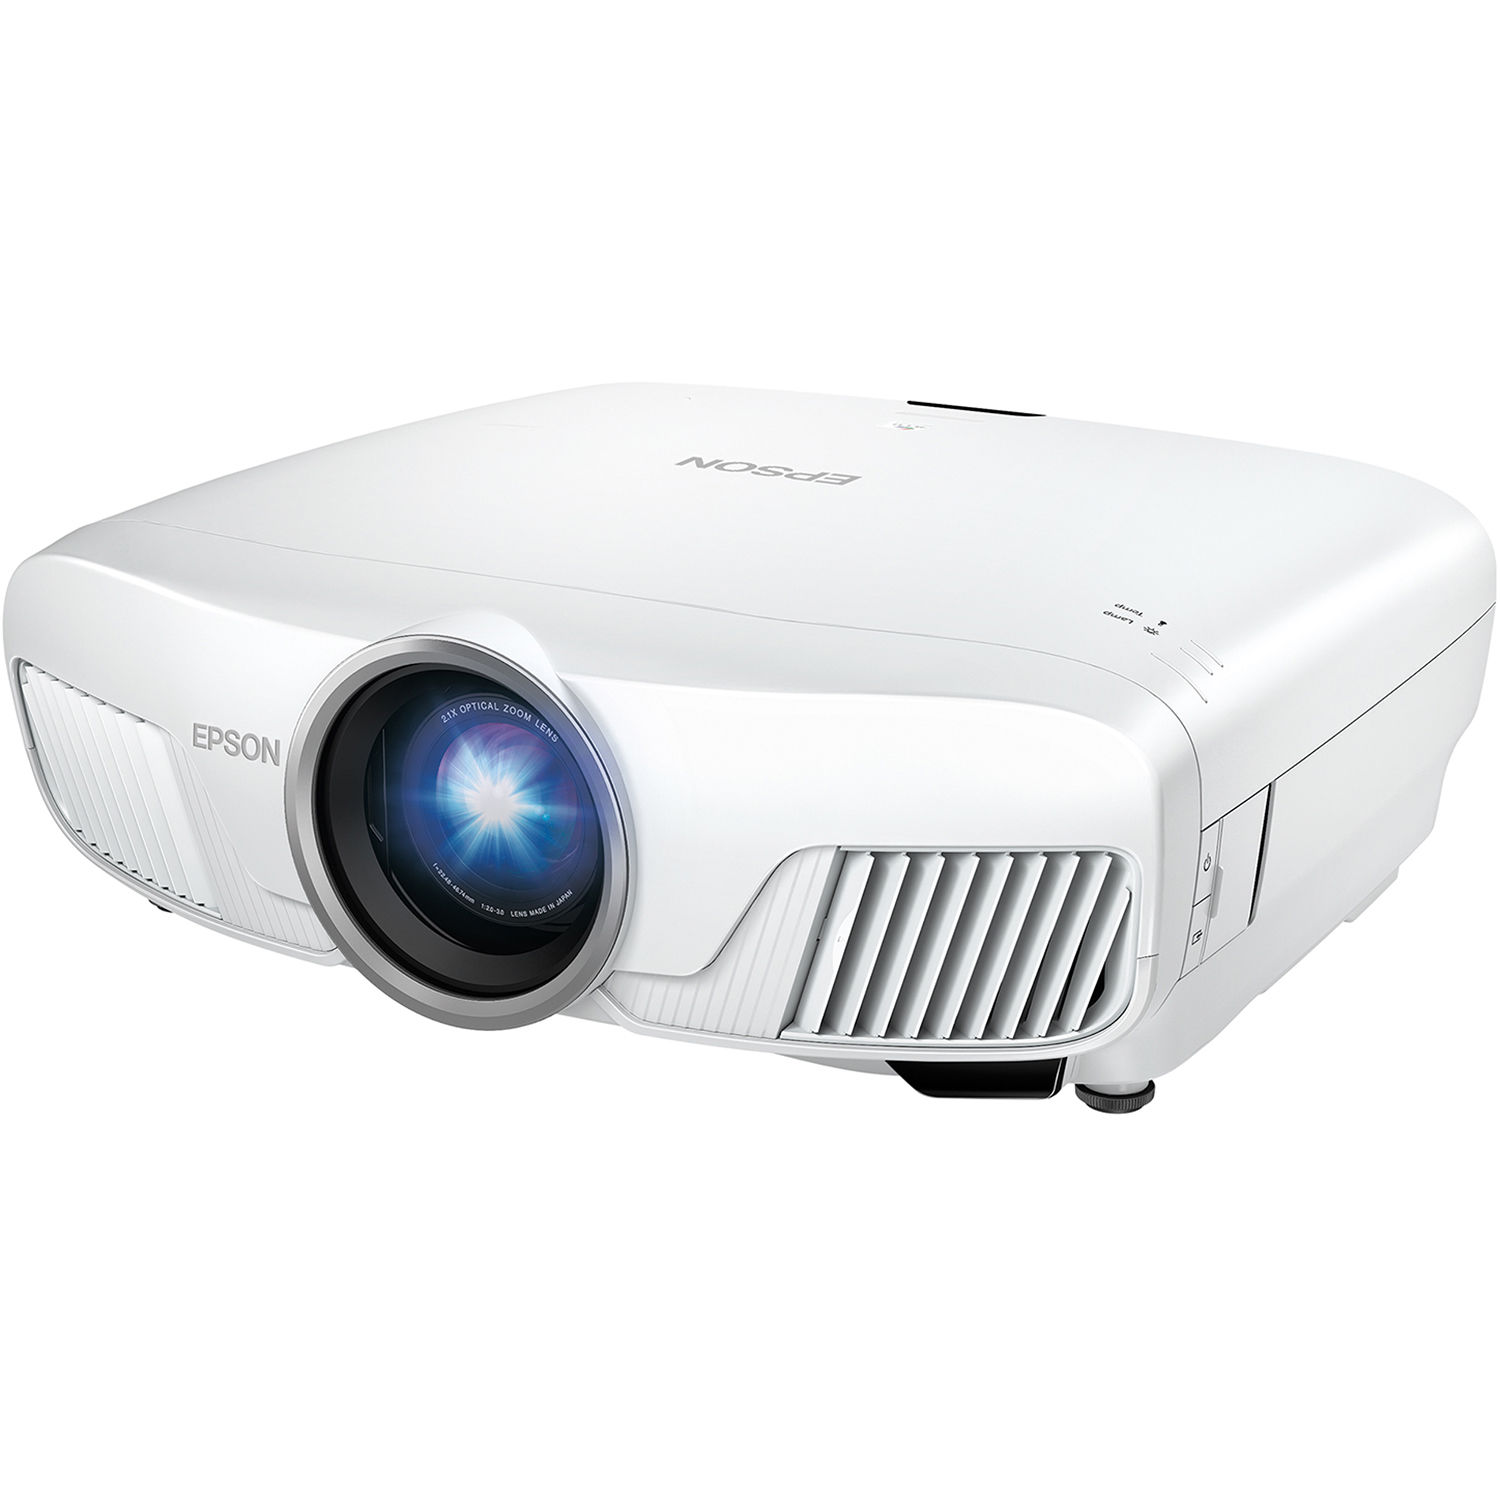 Epson powerlite home cinema 5040ube full hd 3lcd for Hd projector